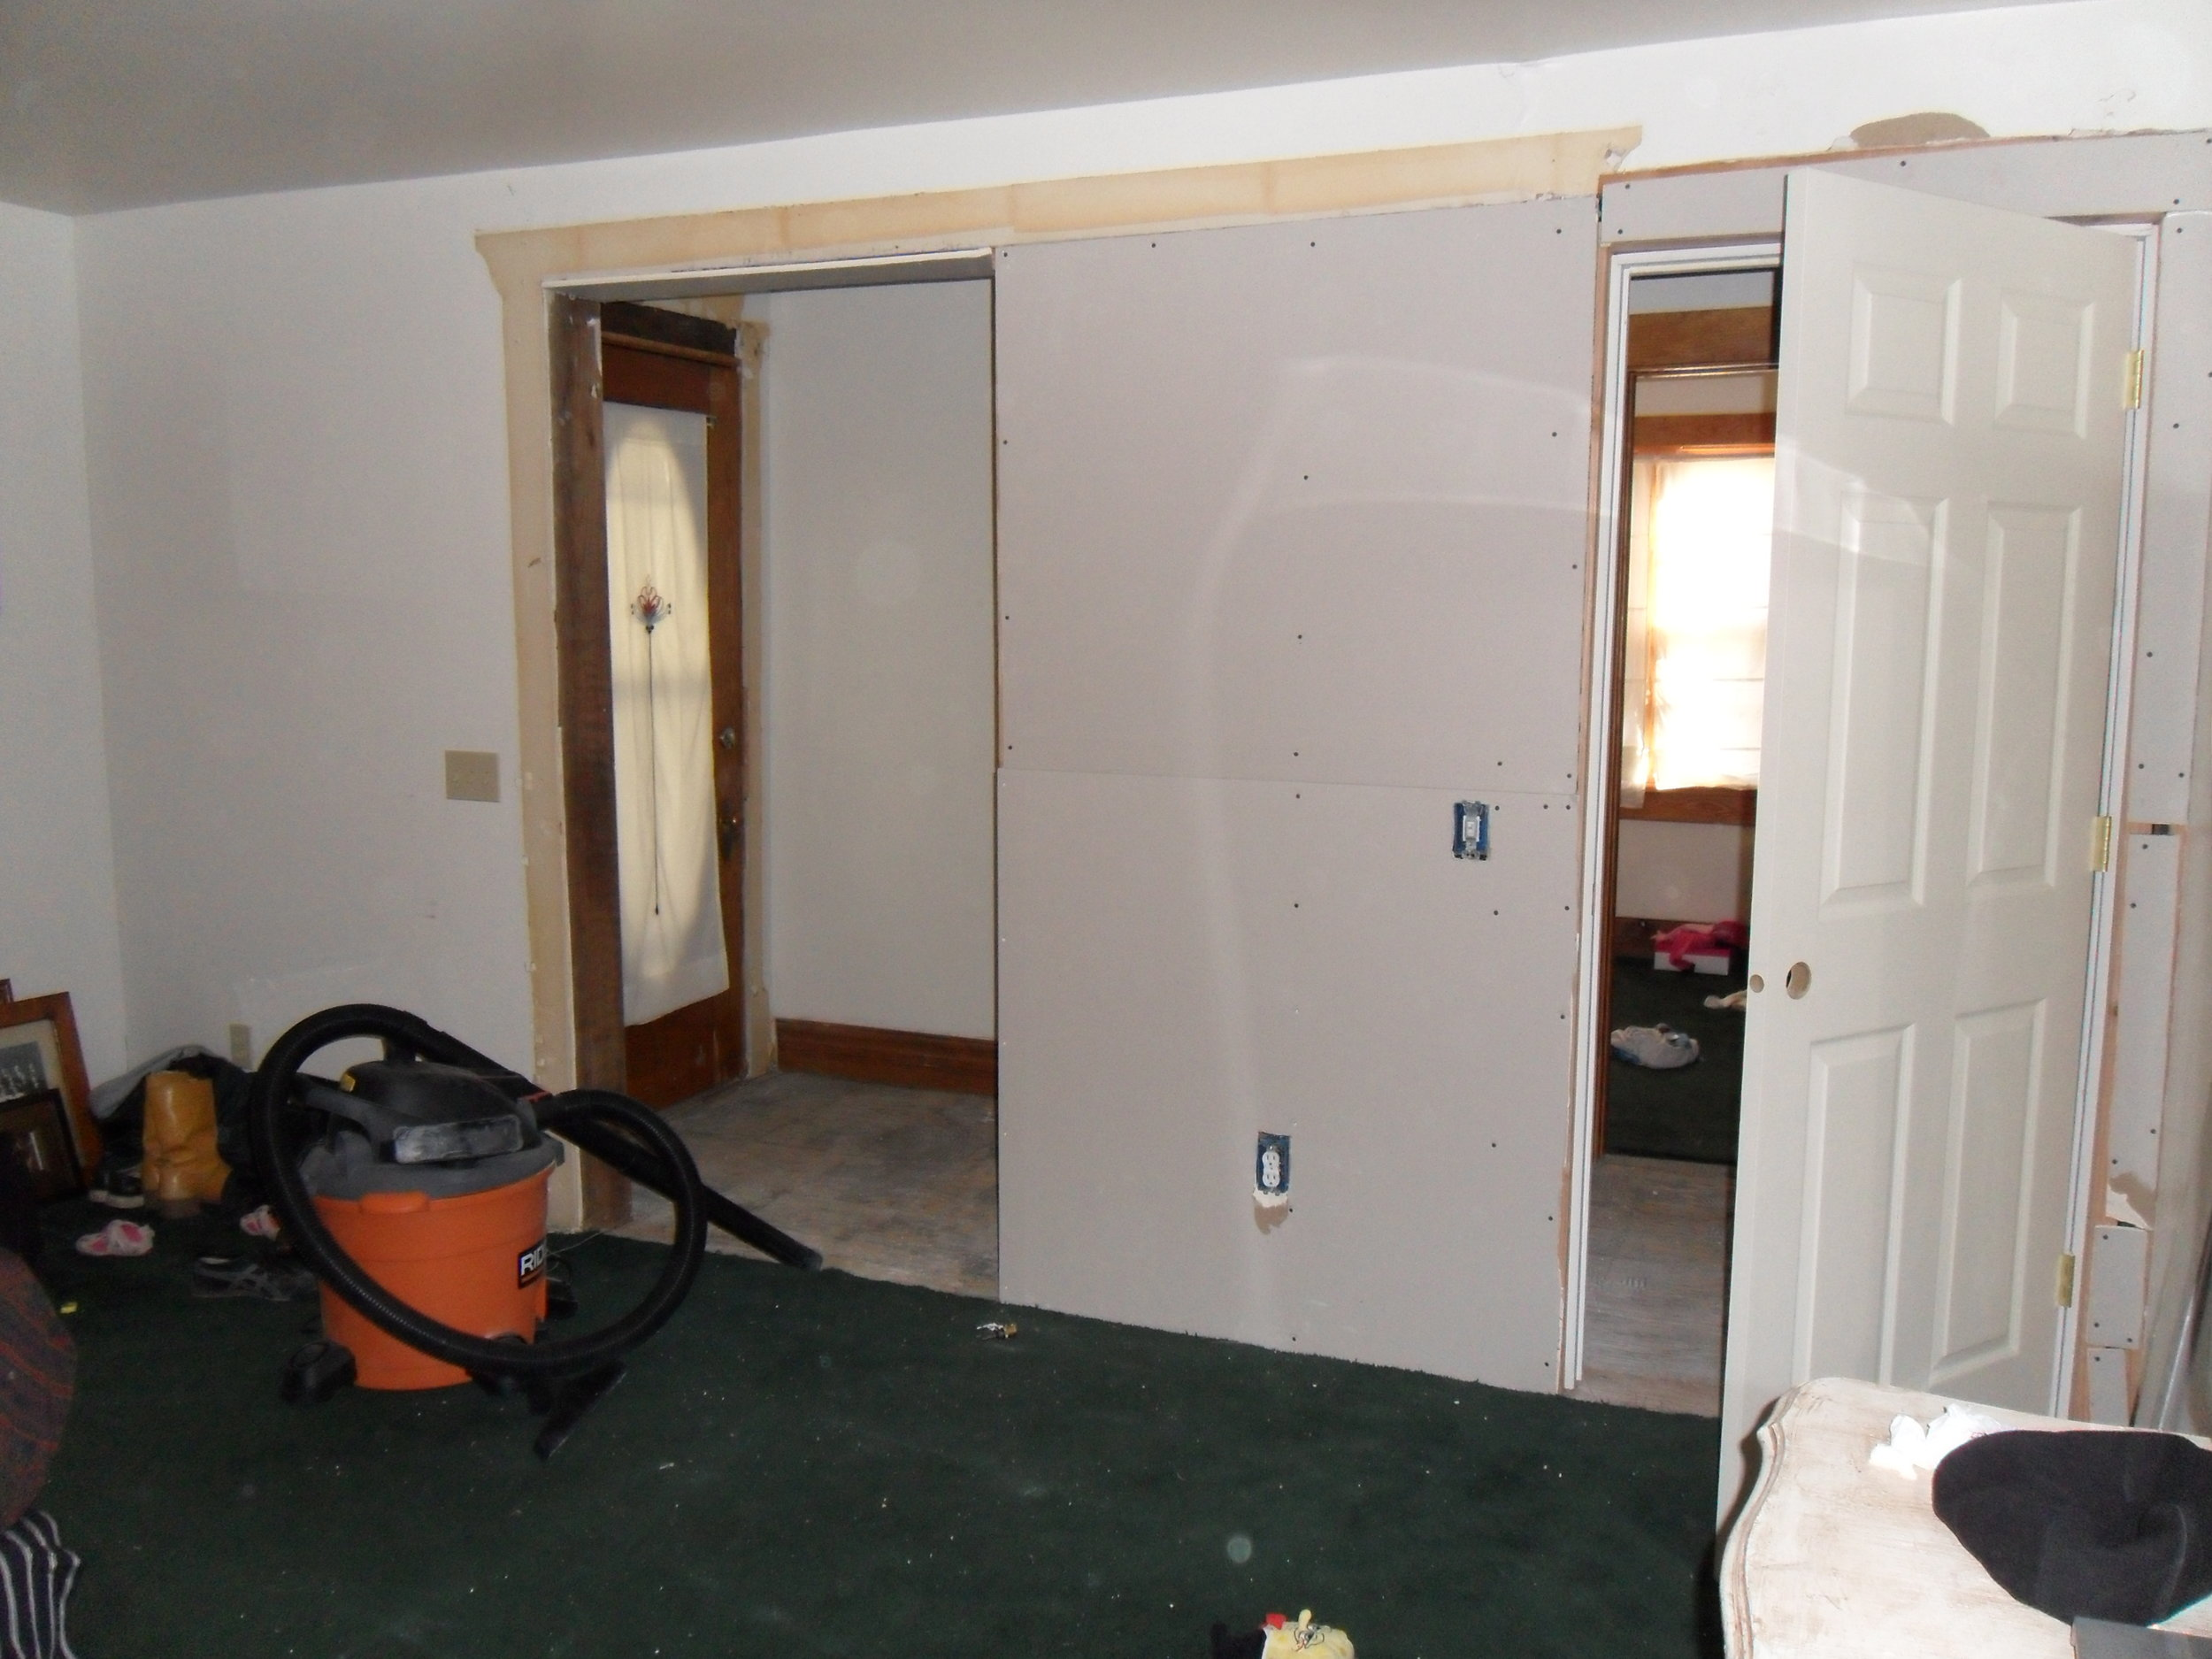 Archway framed in for a closet and new bedroom door. Notice the front door is still in place.